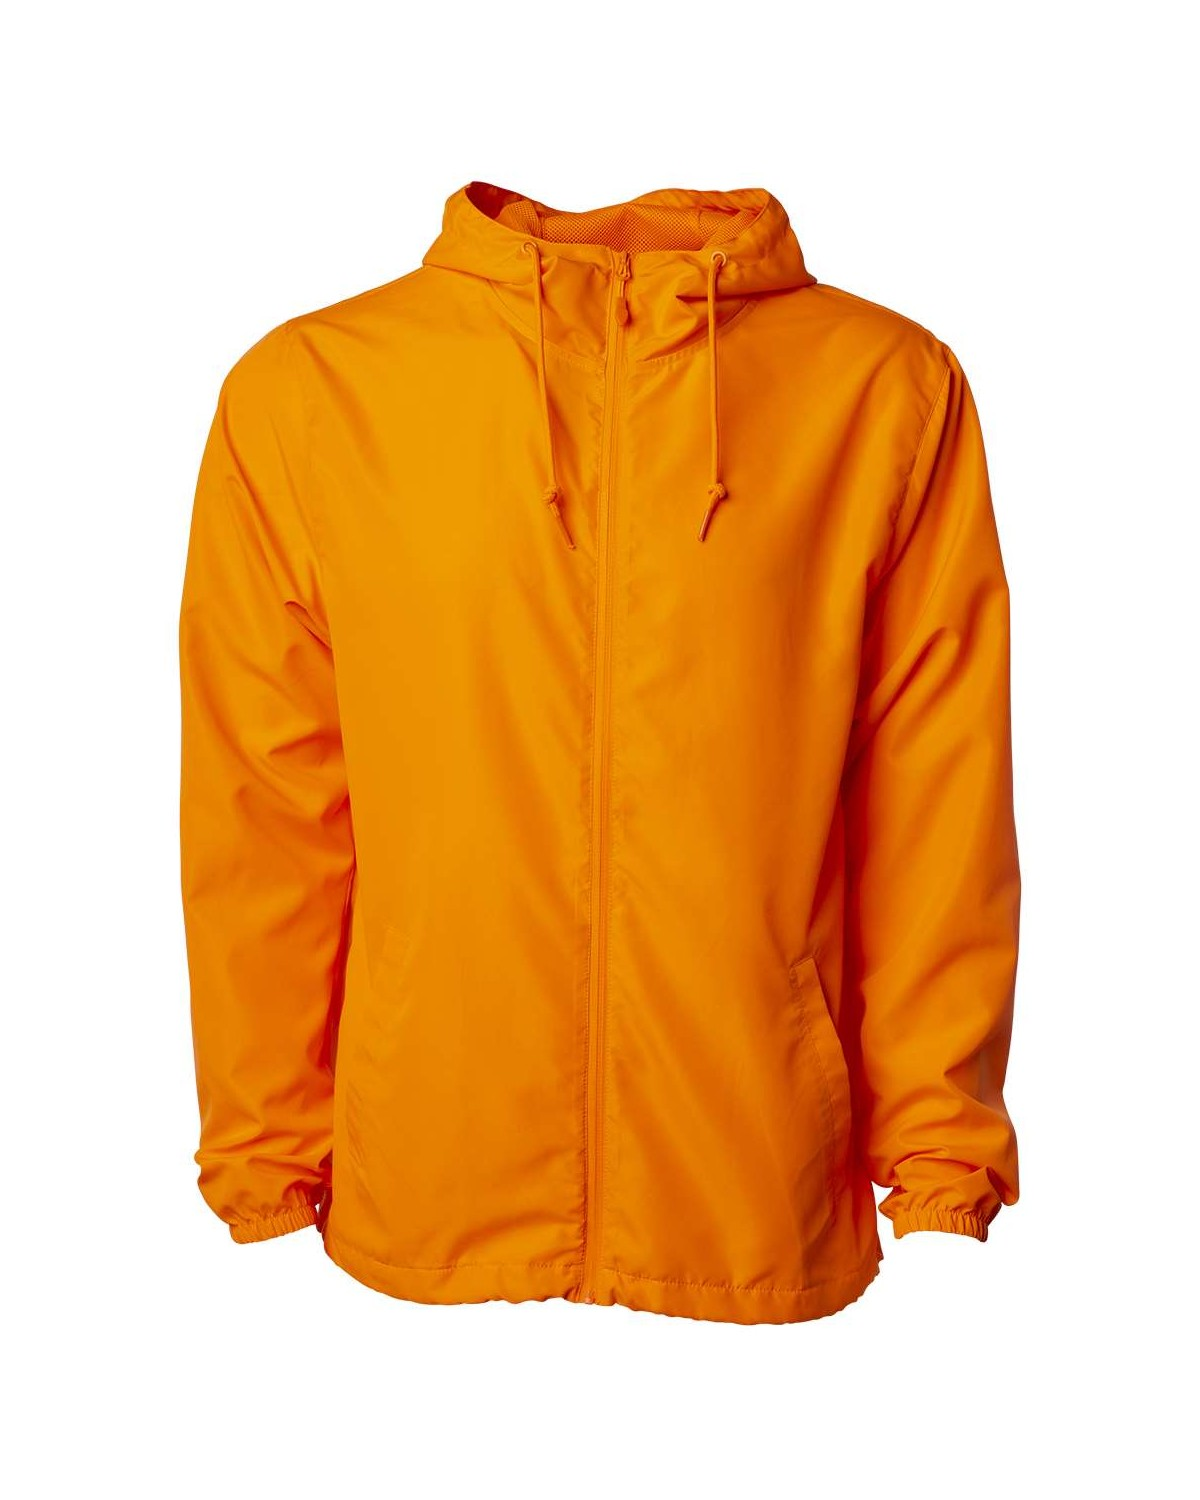 EXP54LWZ Independent Trading Company SAFETY ORANGE